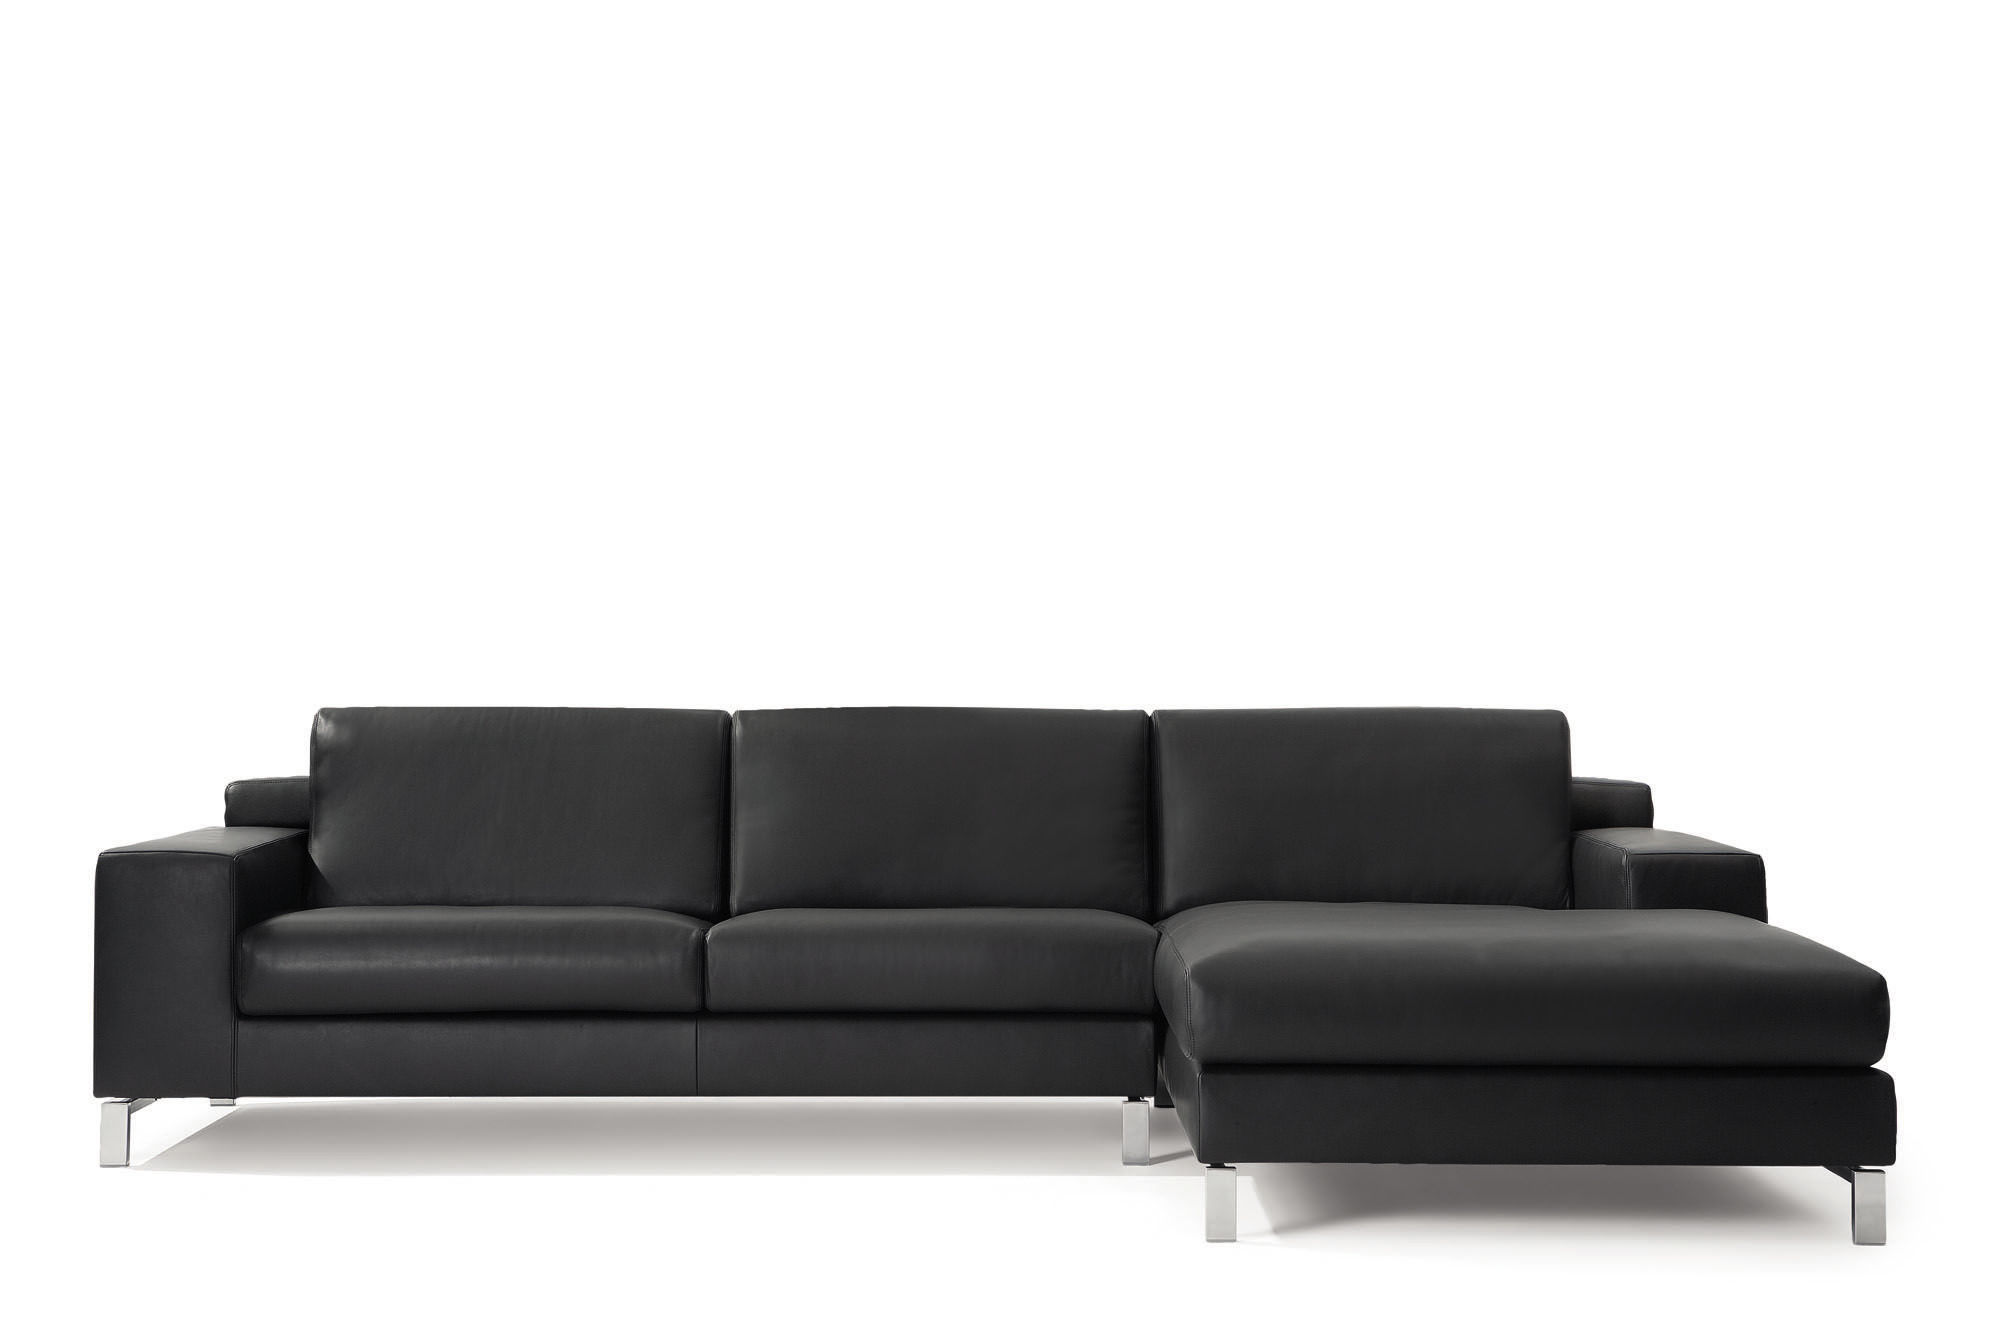 Modular sofa contemporary leather 2 seater SYDNEY by Henk